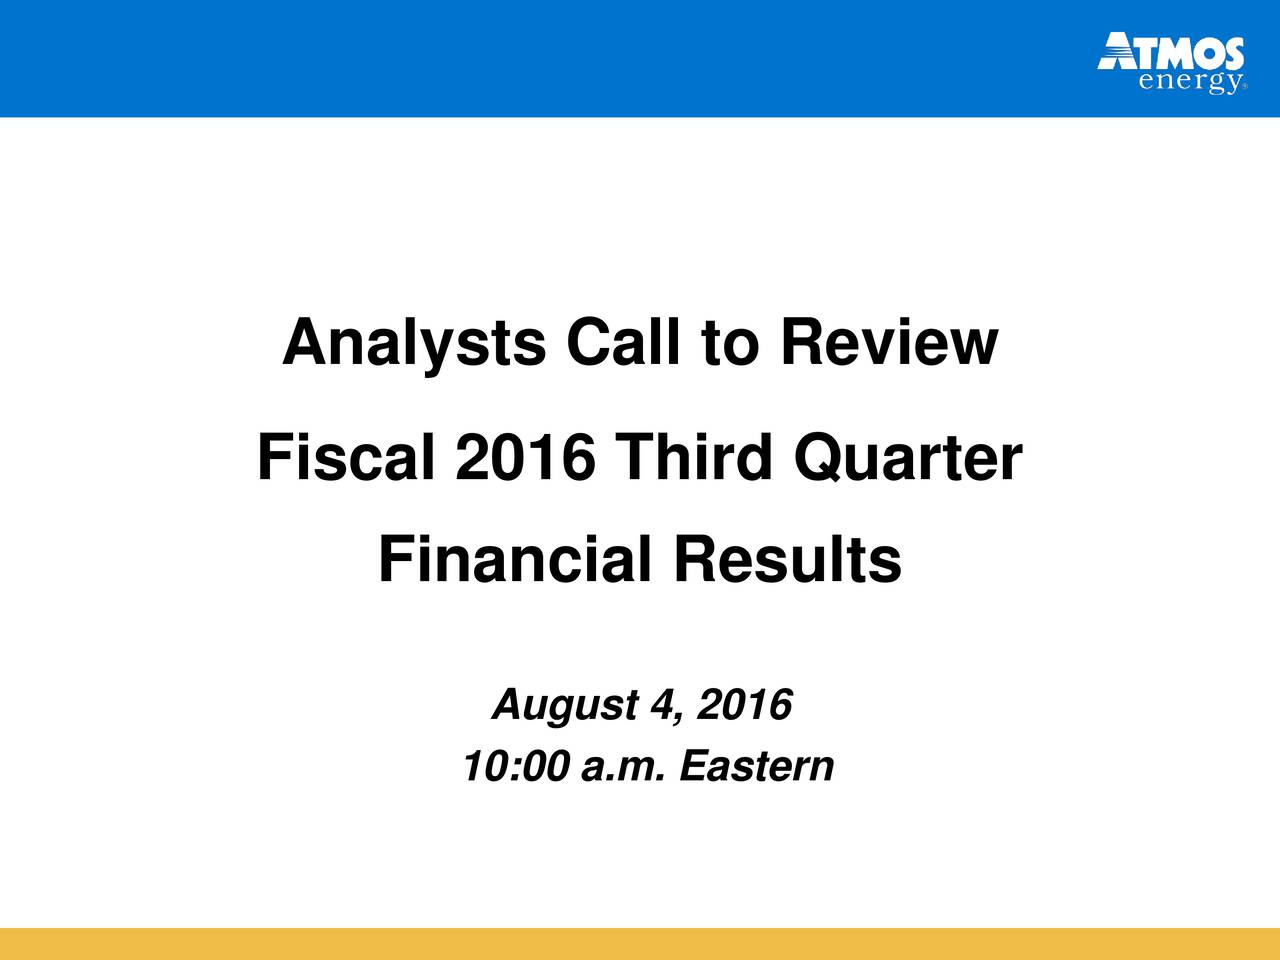 Fiscal 2016 Third Quarter Financial Results August 4, 2016 10:00 a.m. Eastern